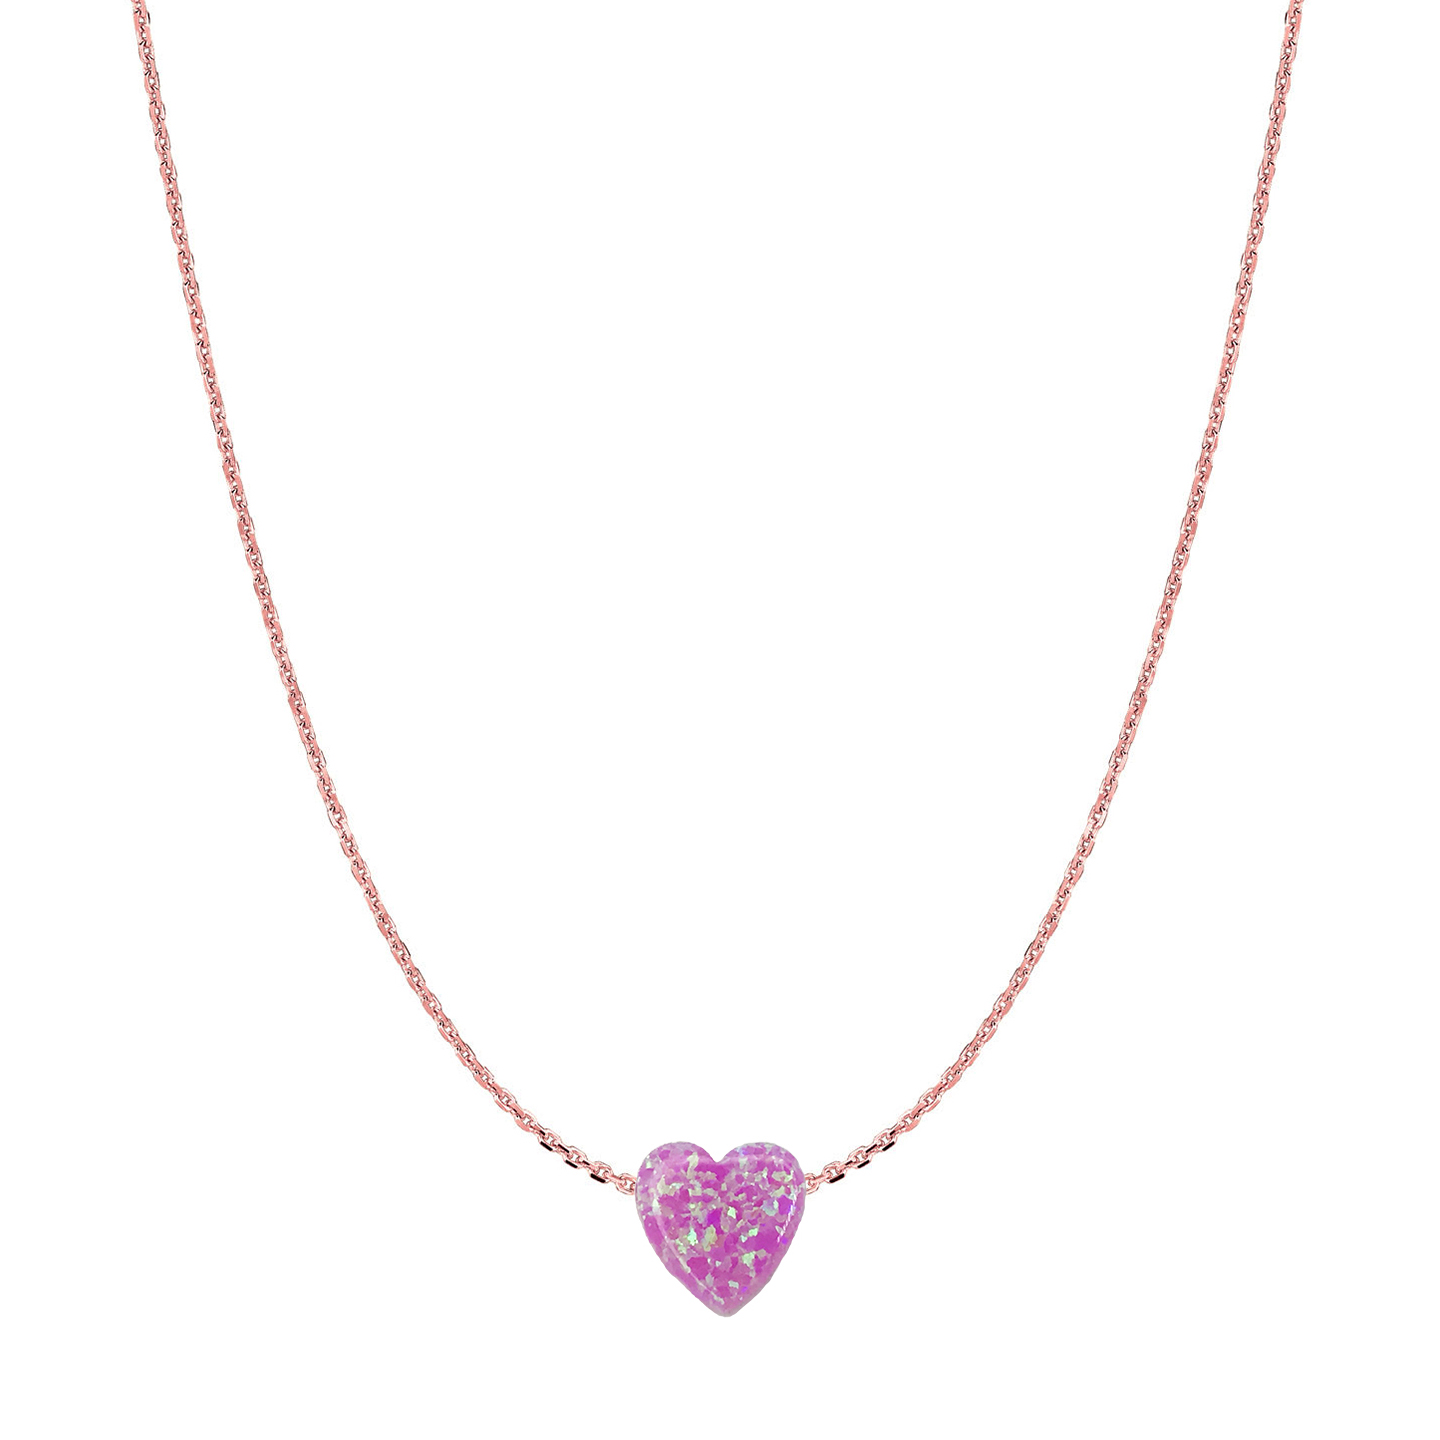 14 Karat Gold Bubble Gum Pink Opal Heart Necklace